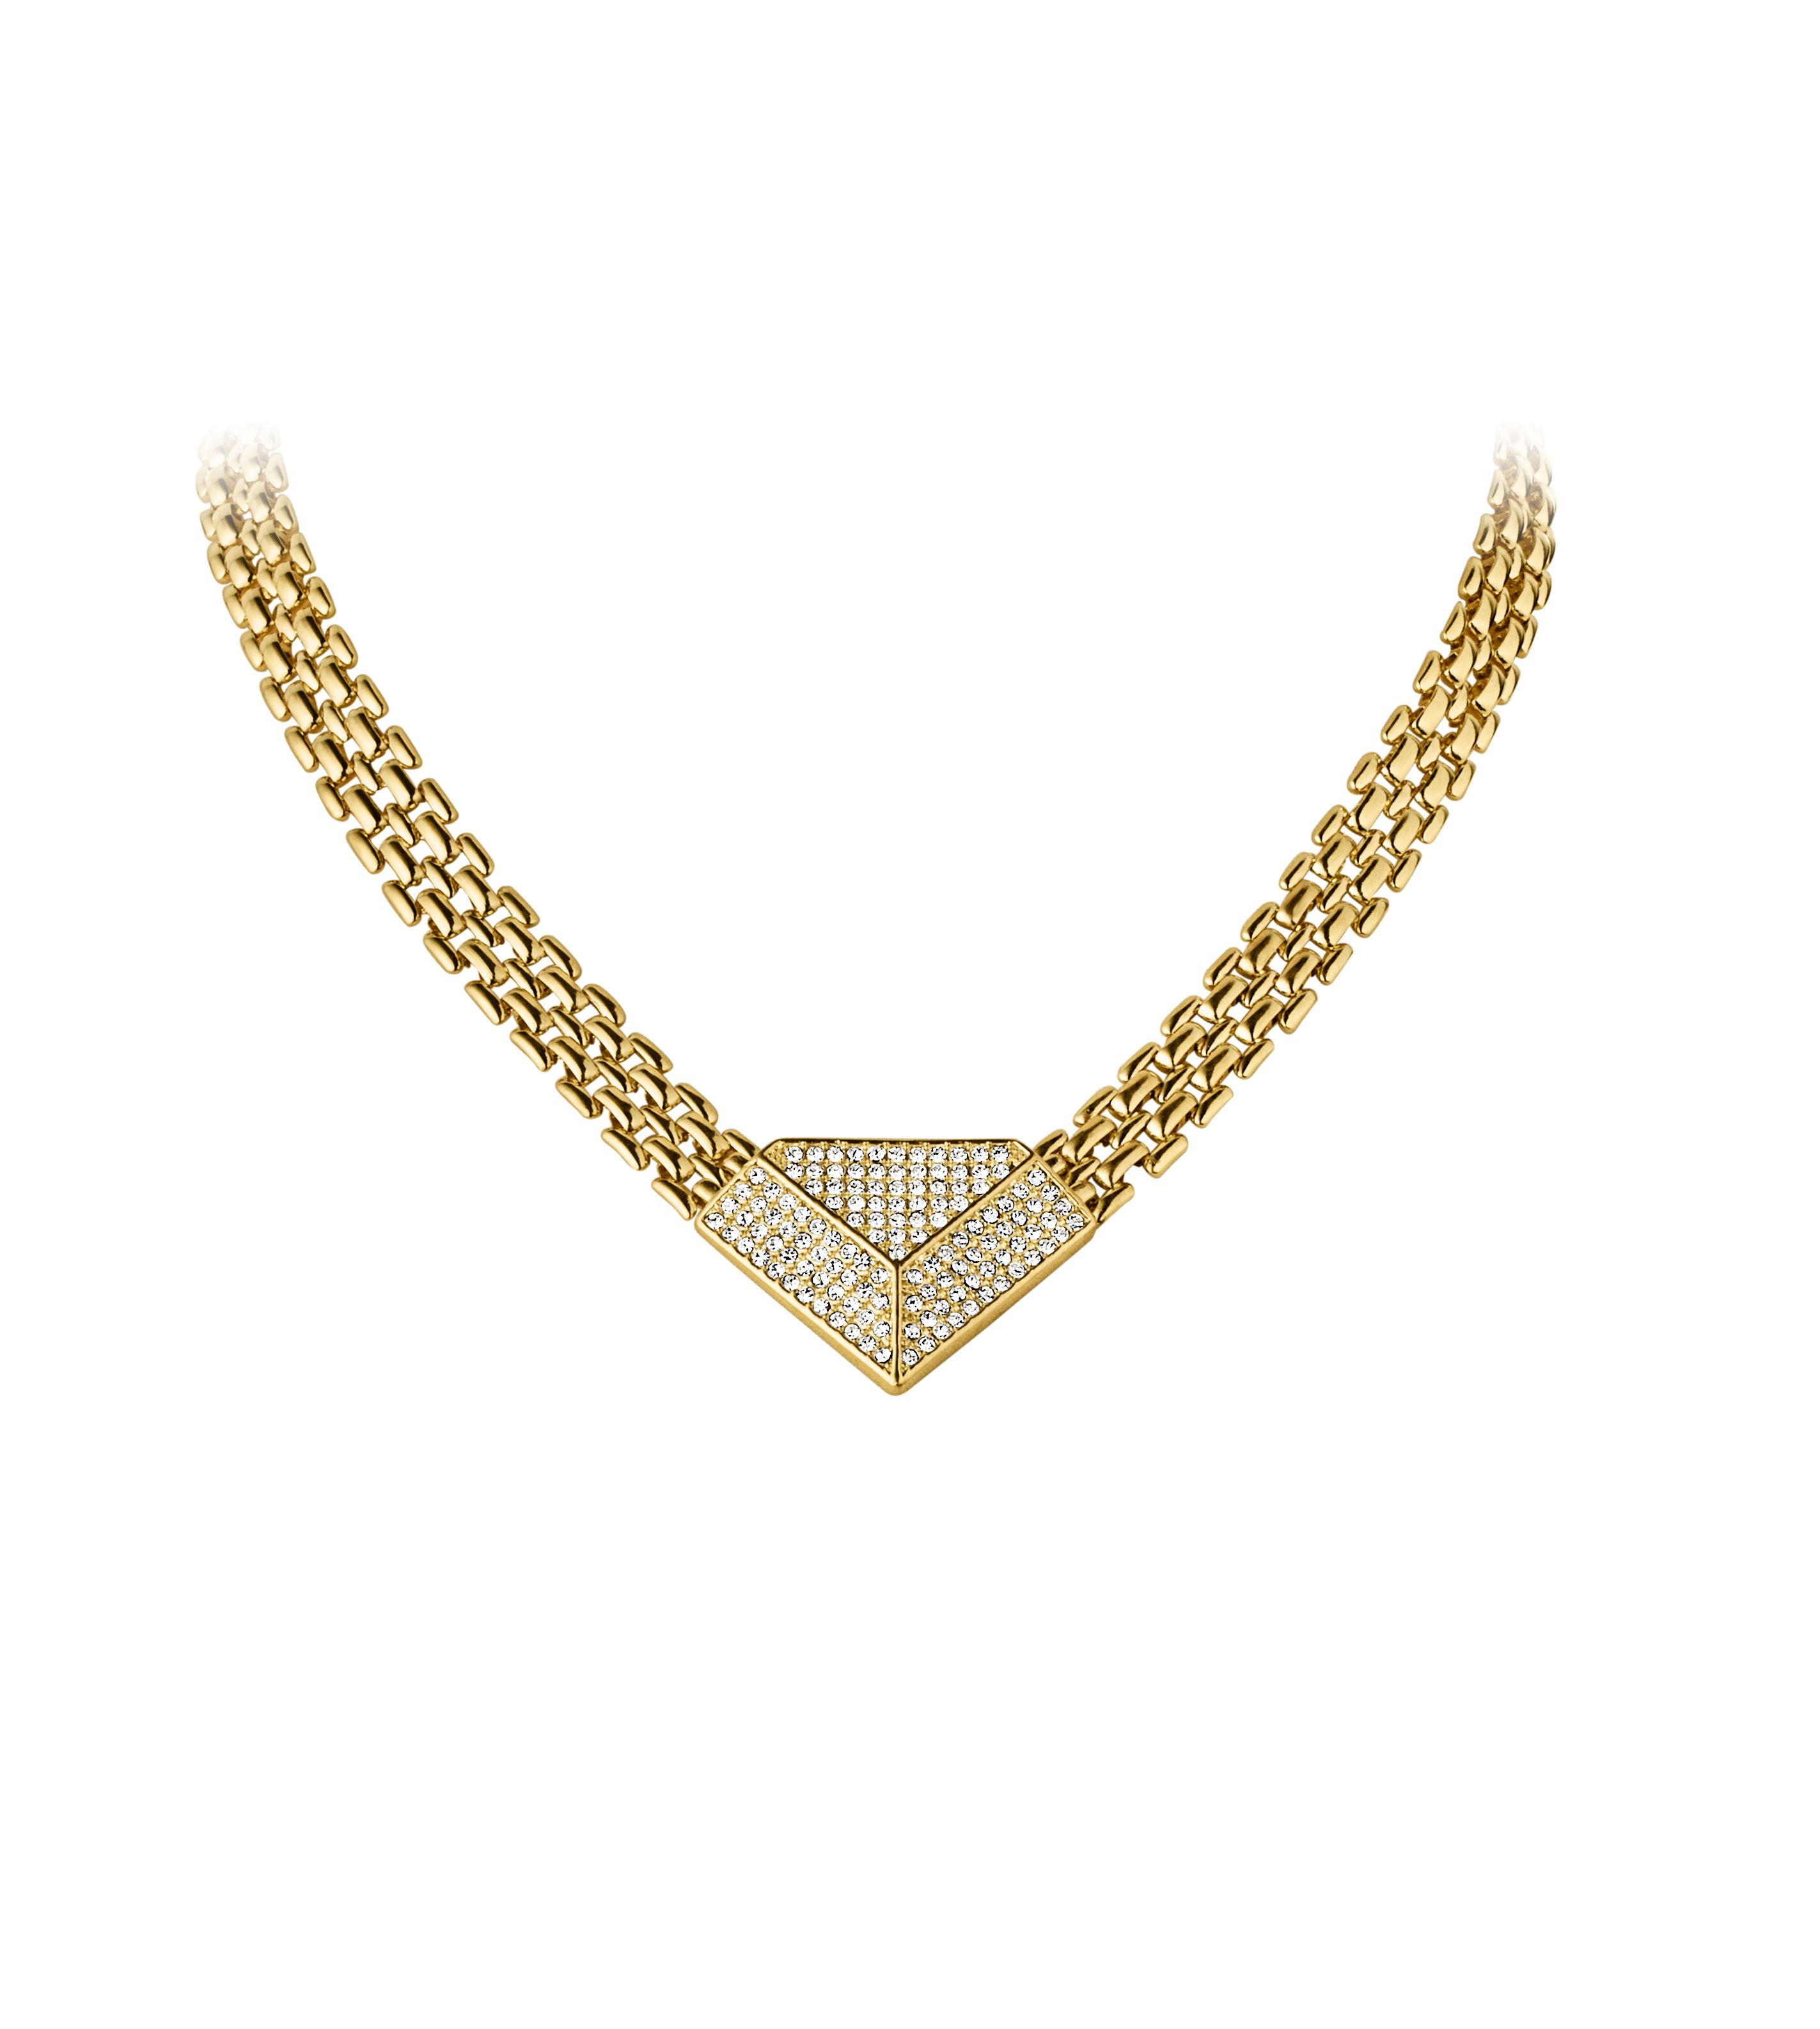 Anubis shiny gold necklace